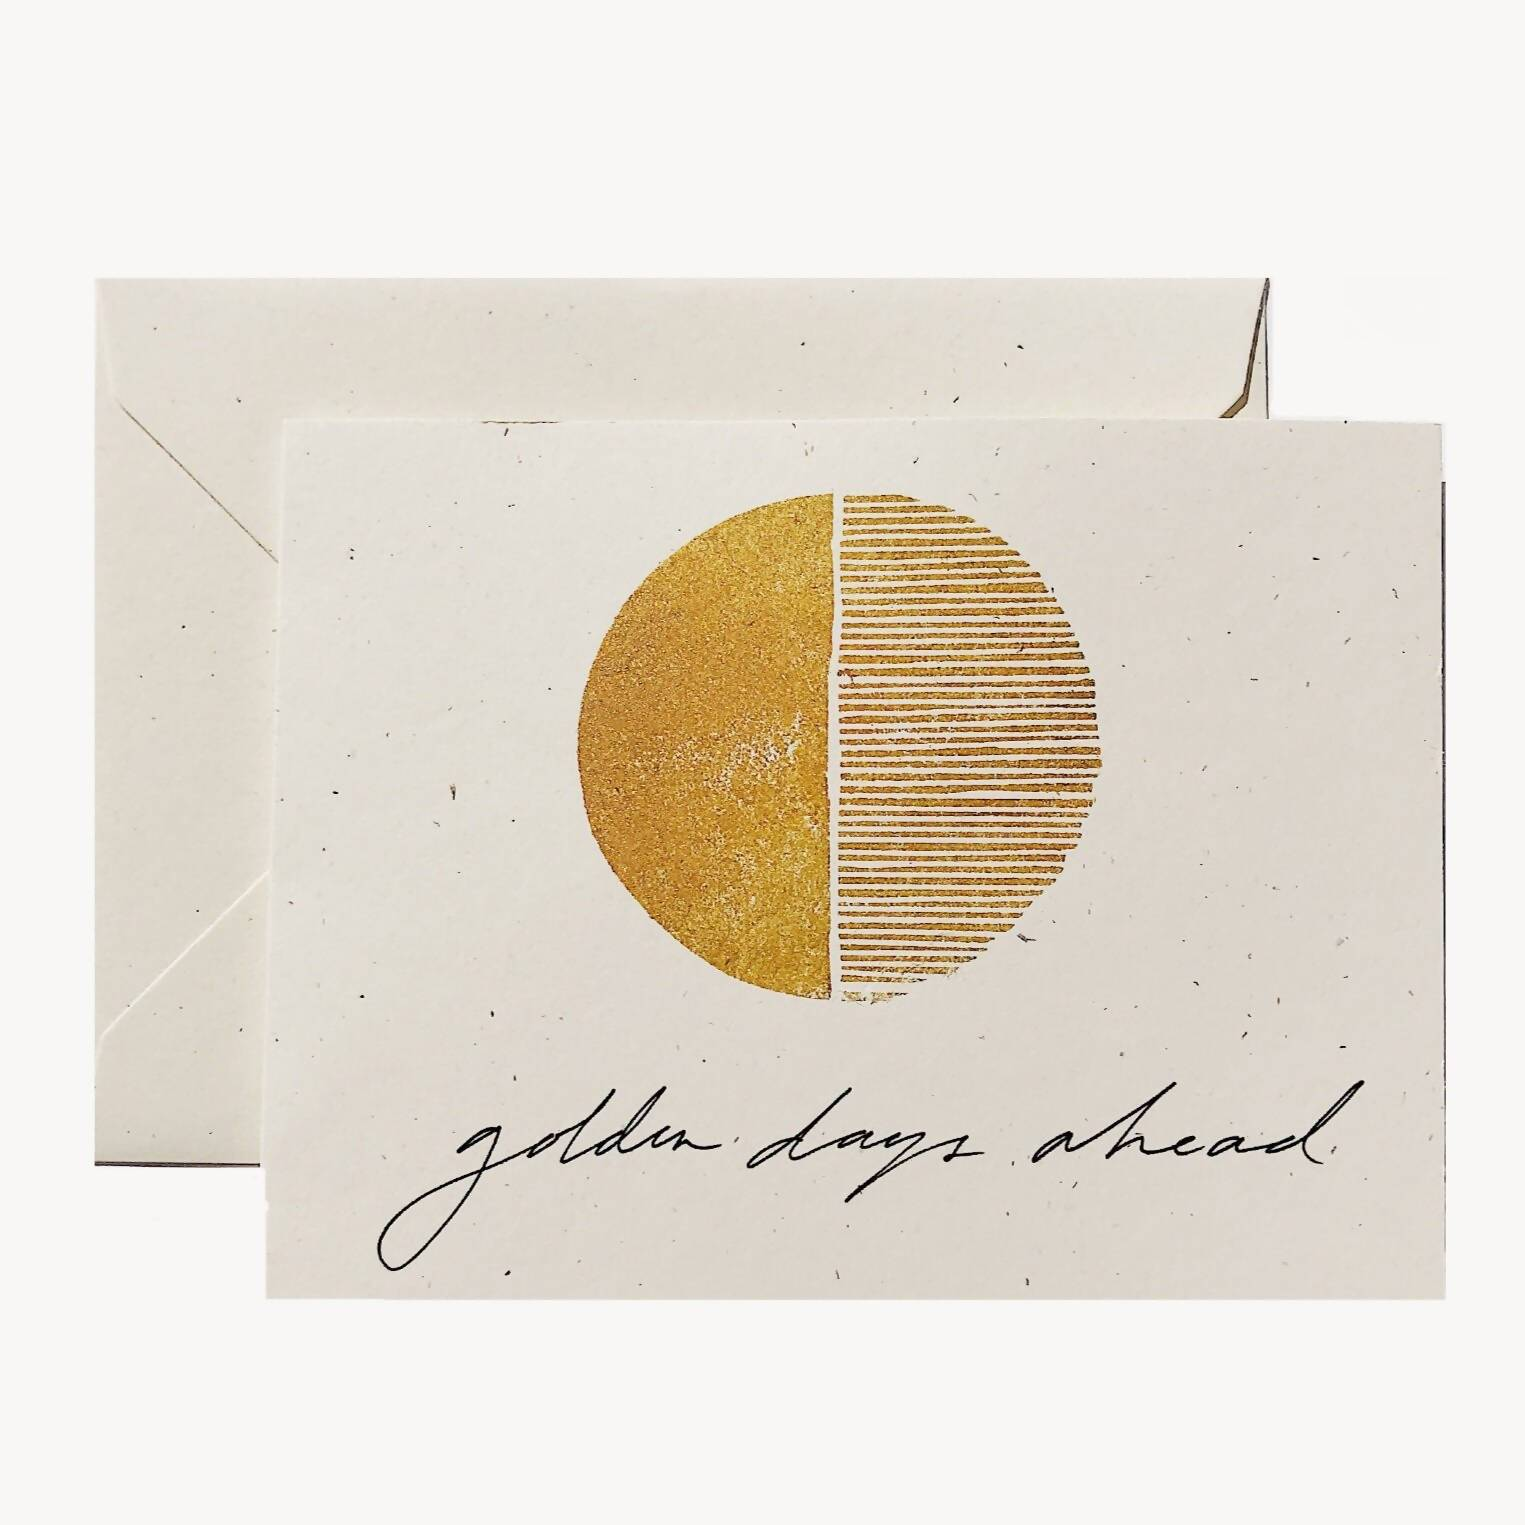 Golden Days Ahead Card - Generic Greeting Cards - Twig & Co - Naiise